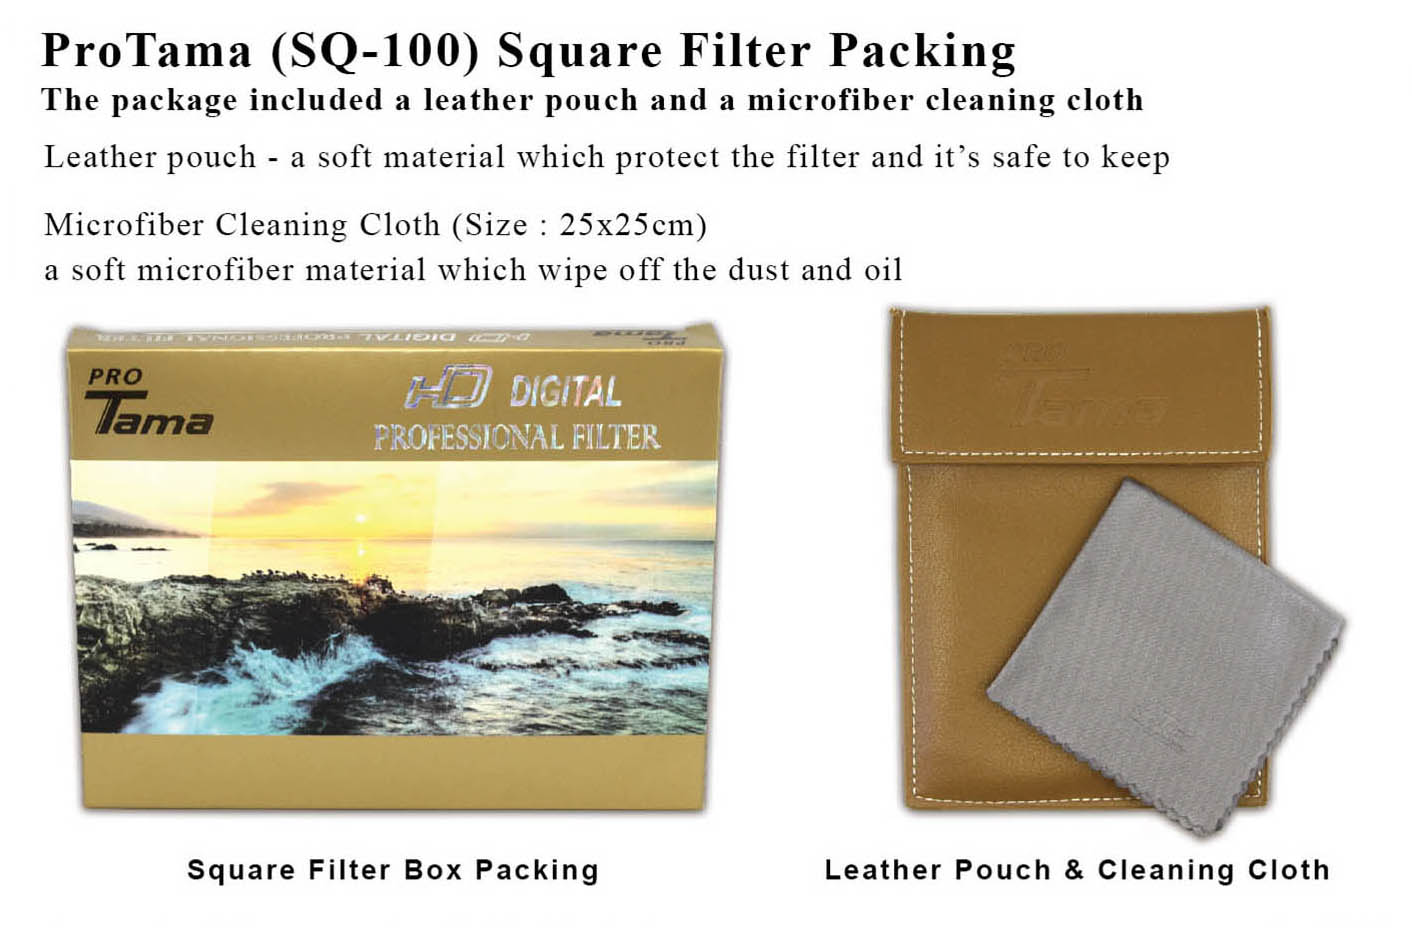 ProTama (SQ-100) Square Filter Packing - Package included a leather pouch and a microfiber cleaning cloth (25x25cm)